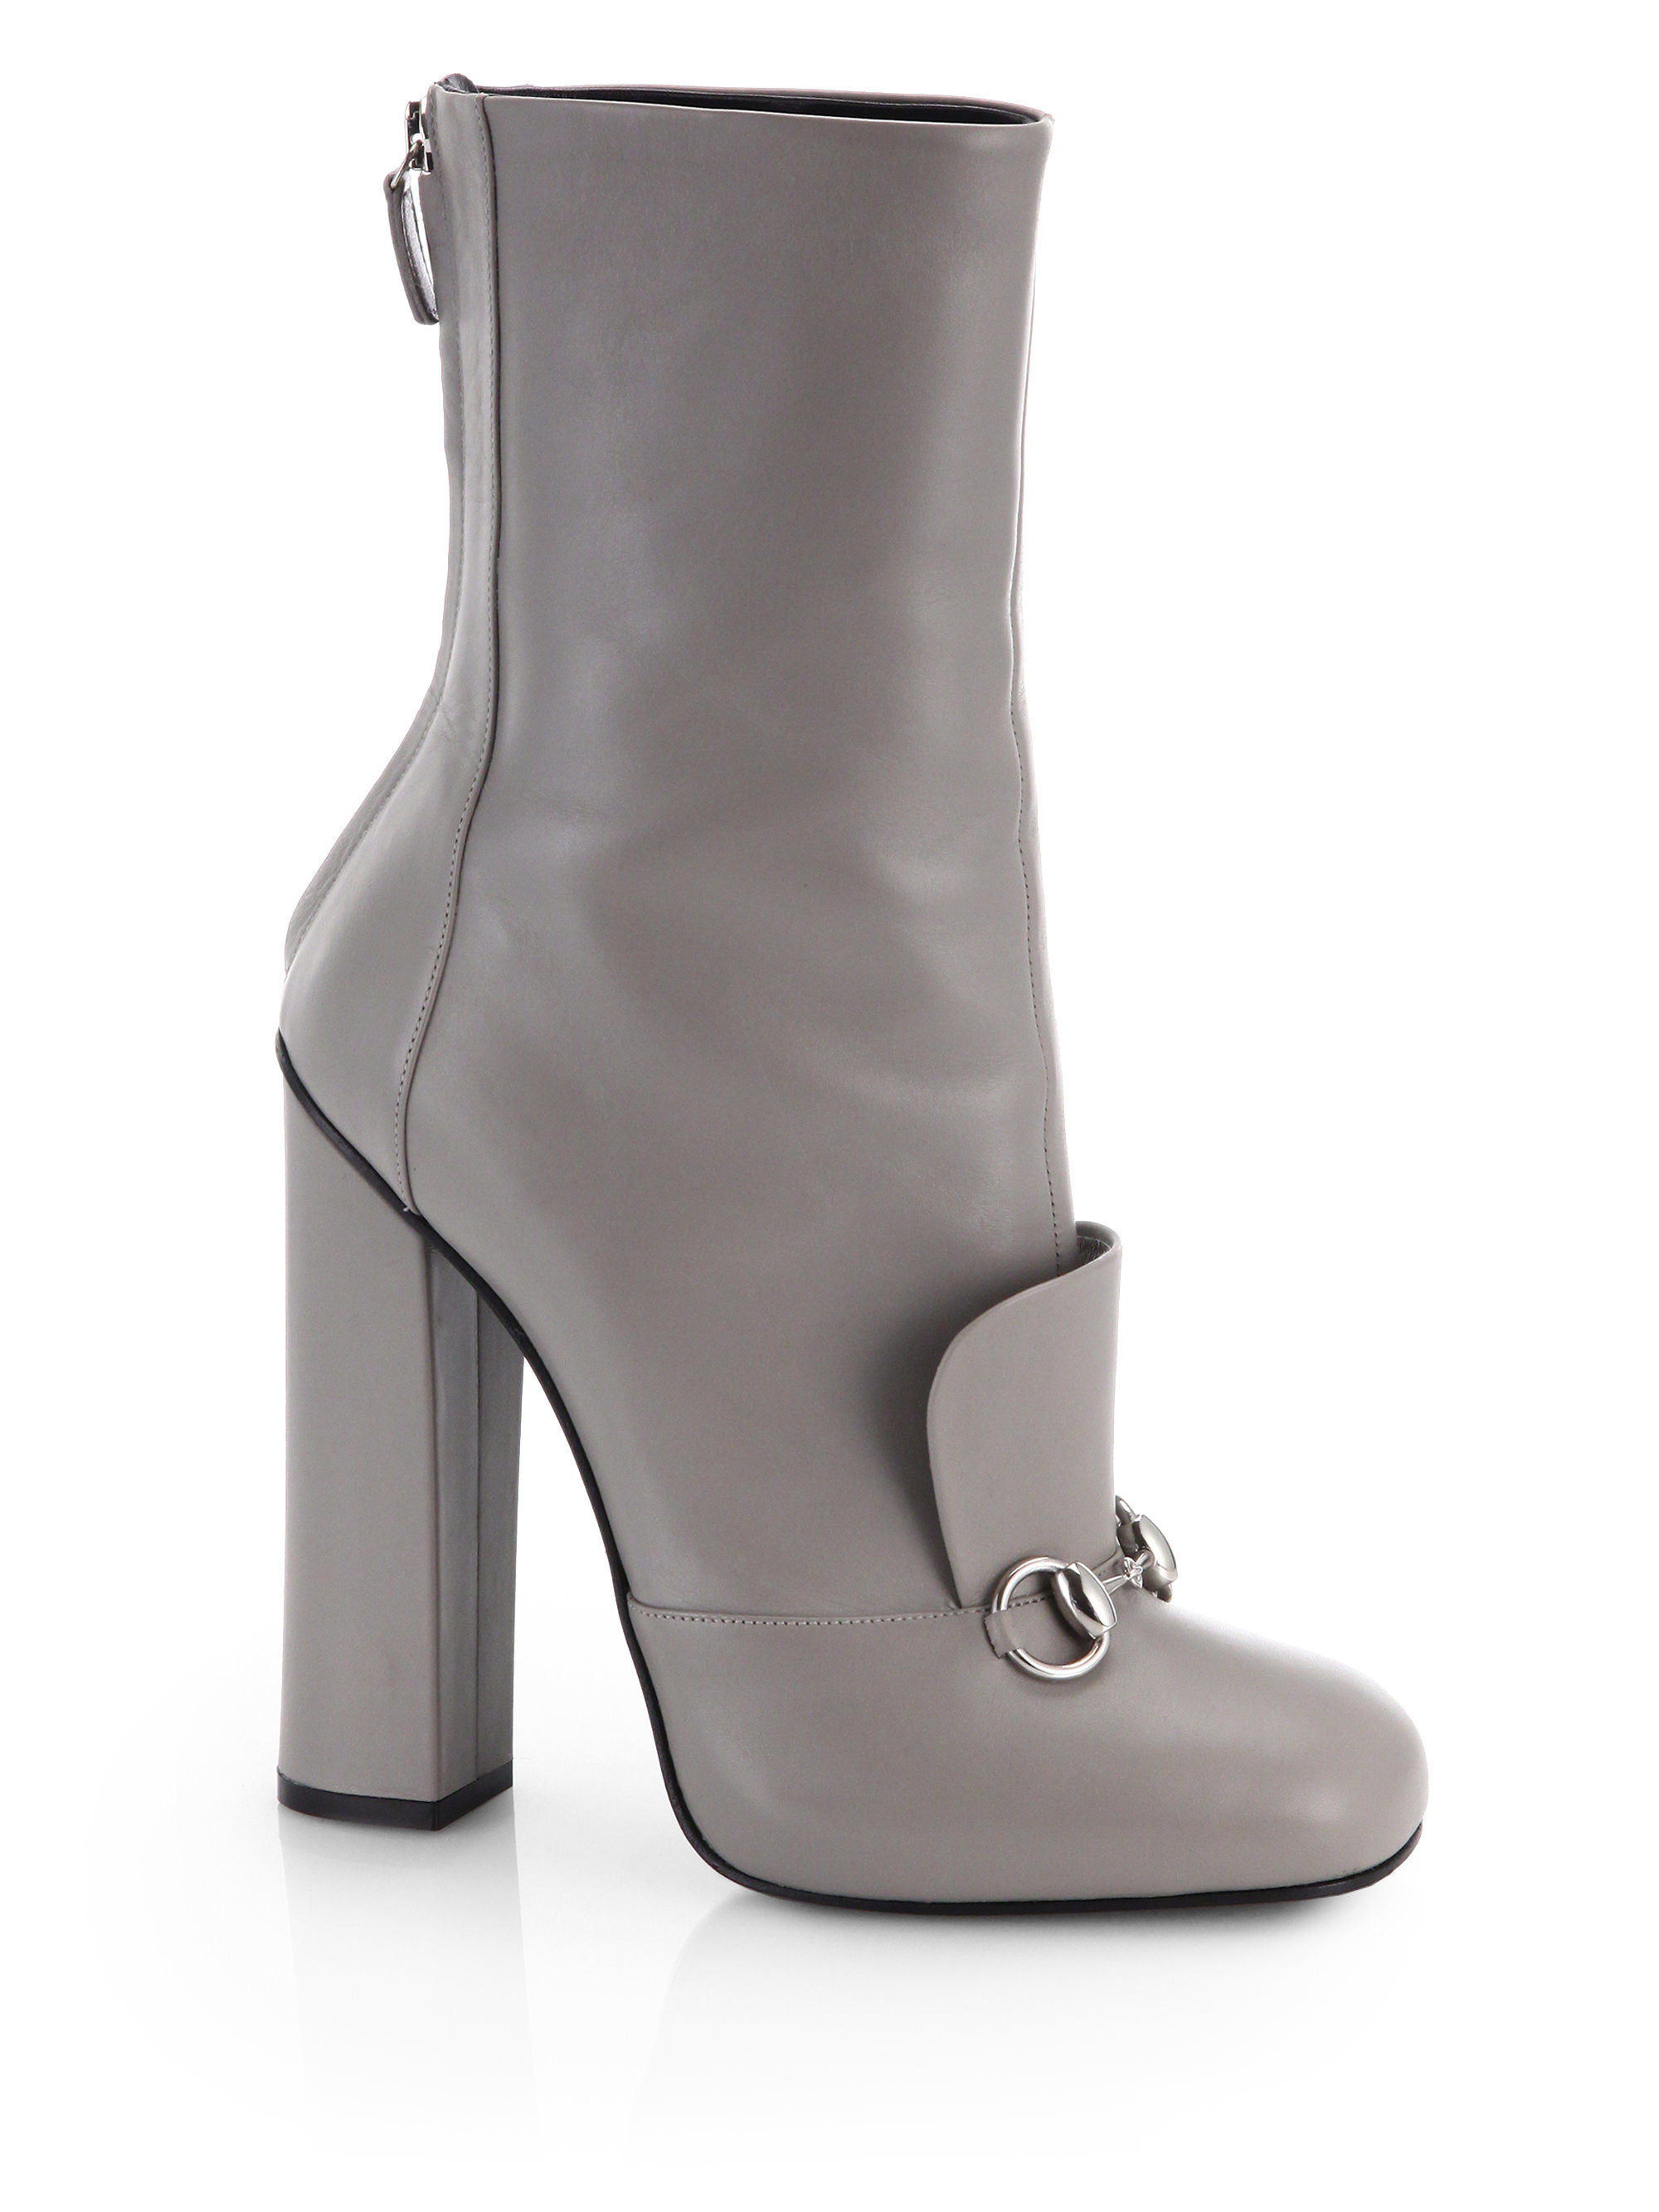 79413a57653bb0 Lyst - Gucci Lillian Horsebit Leather Ankle Boots in Gray